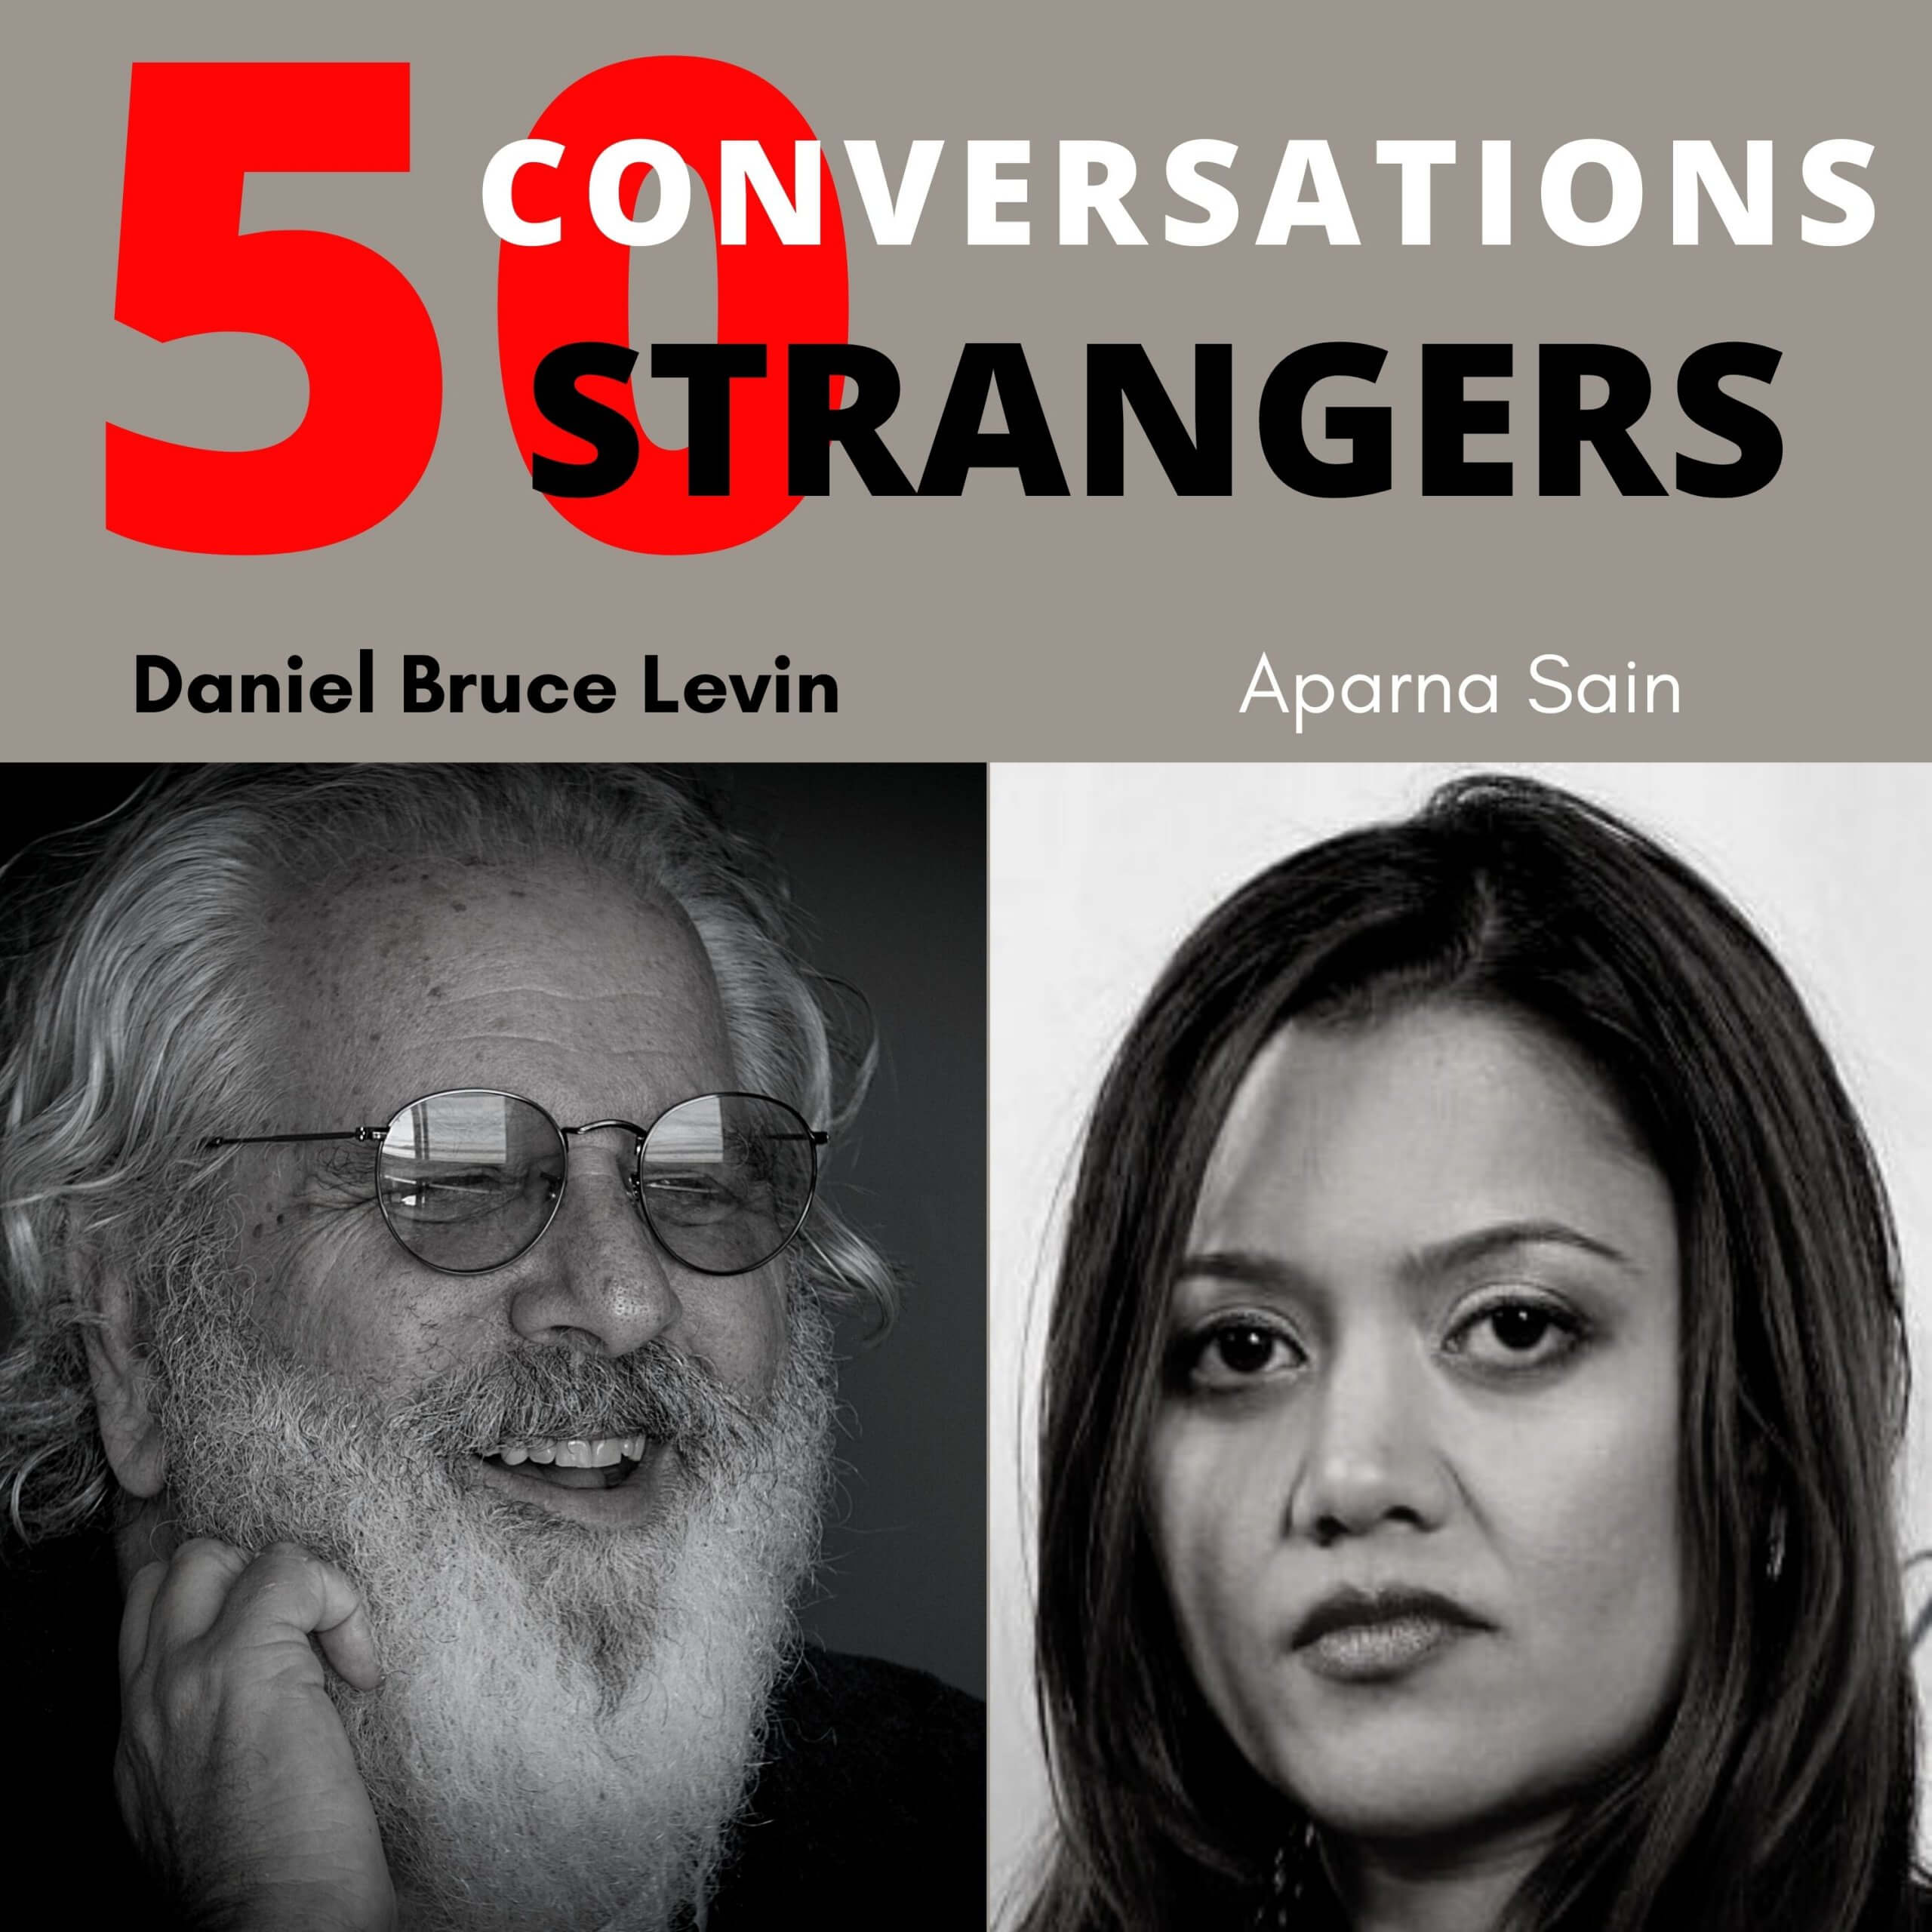 50 Conversations with 50 Strangers with Aparna Sain